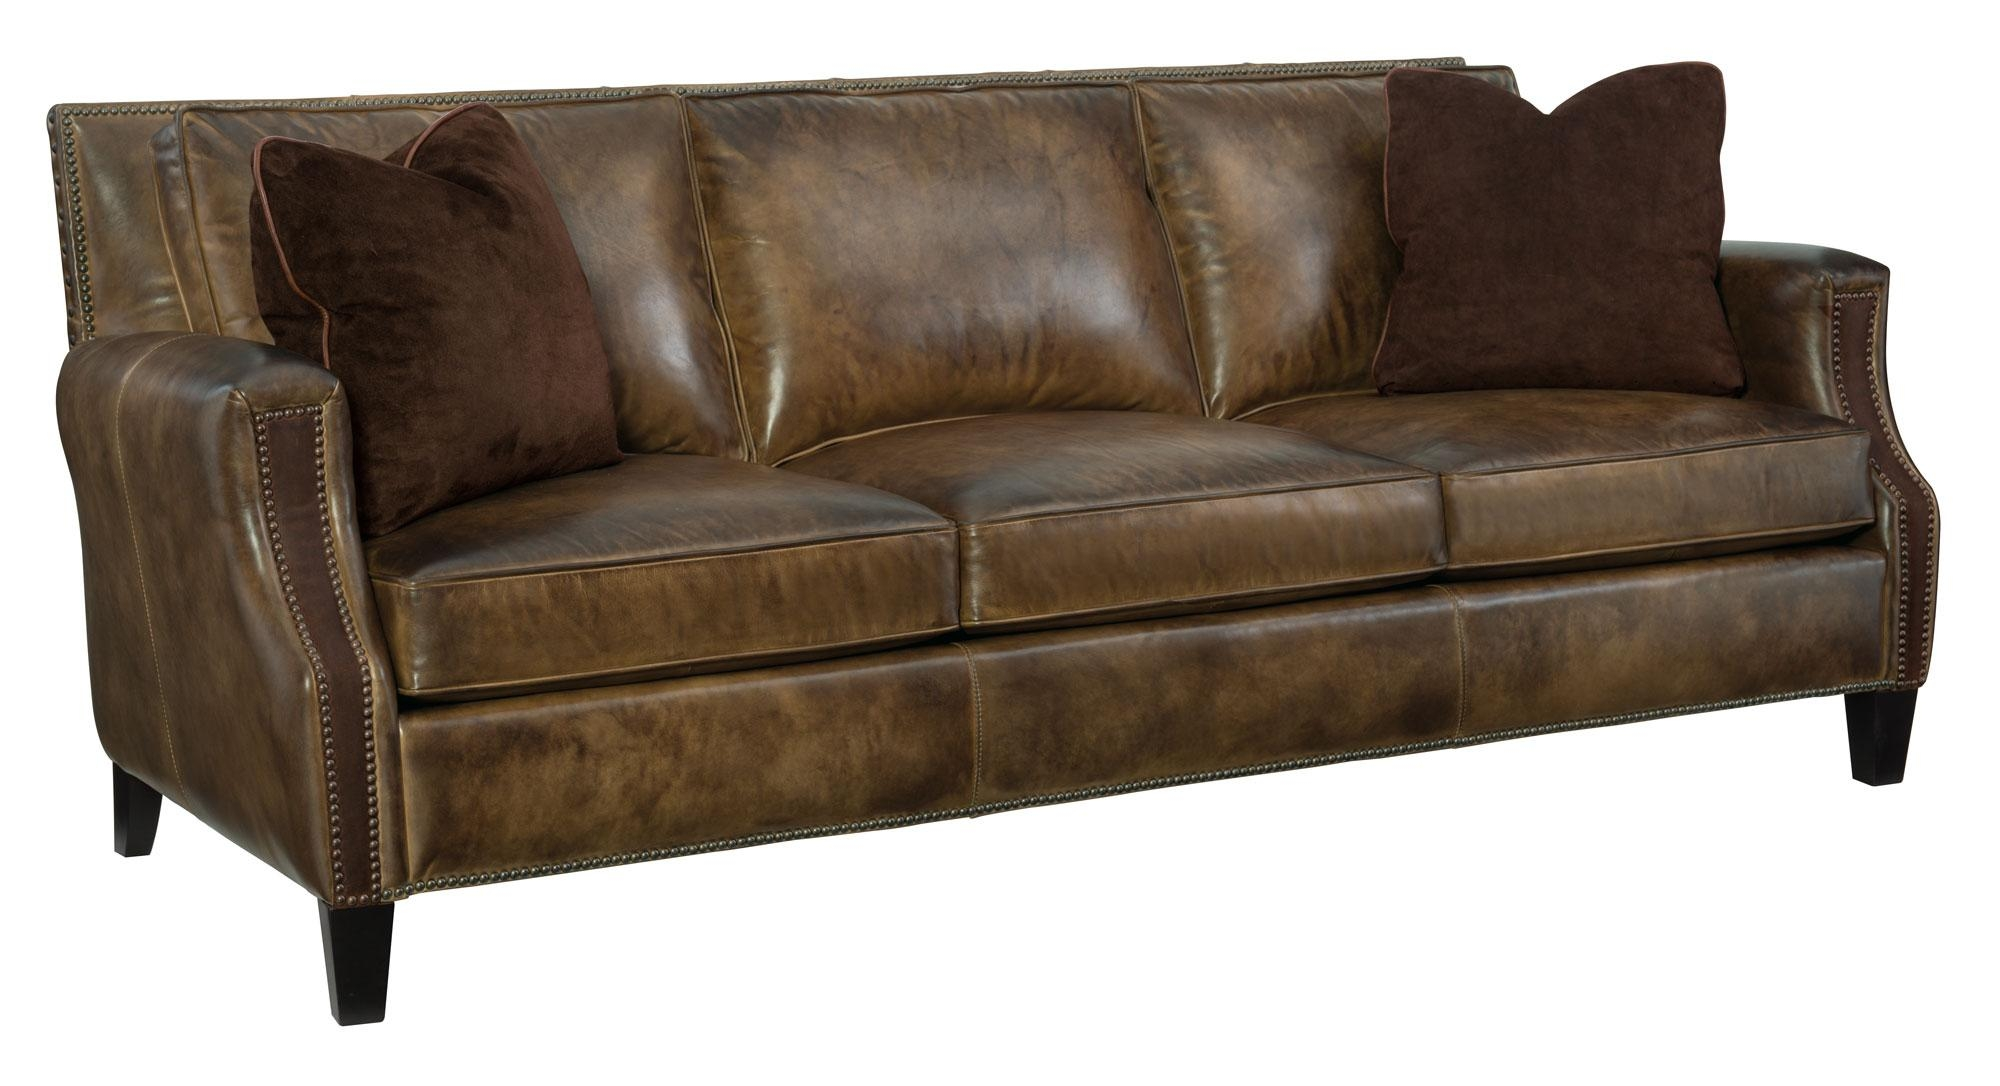 Express Program | Bernhardt With Regard To Foster Leather Sofas (View 18 of 20)